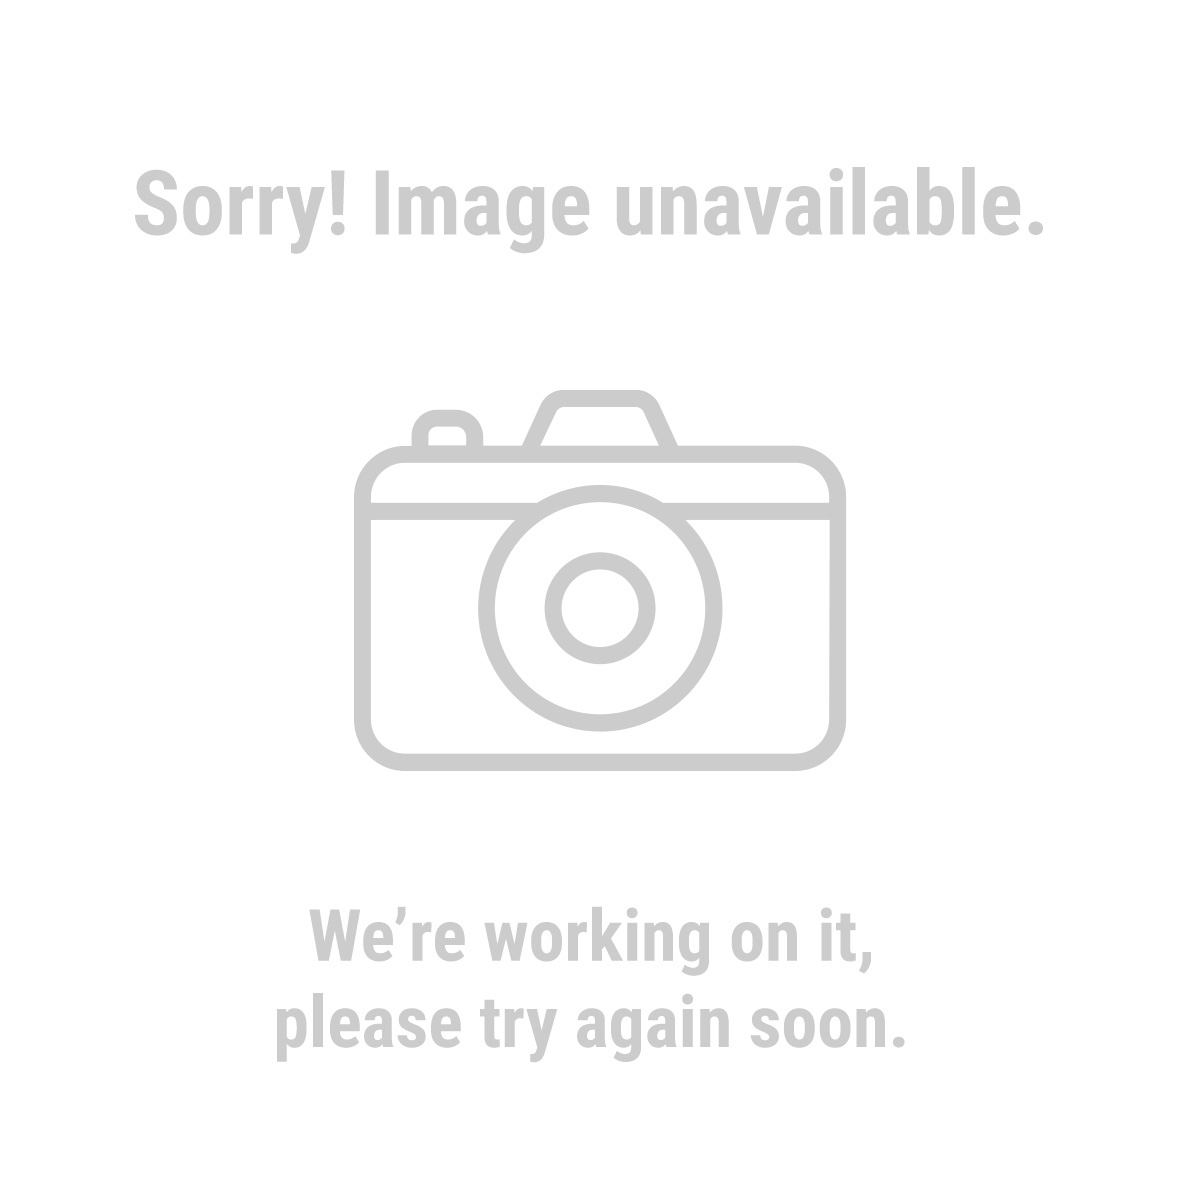 Warrior® 60381 5 Piece Center Drill Countersink Set